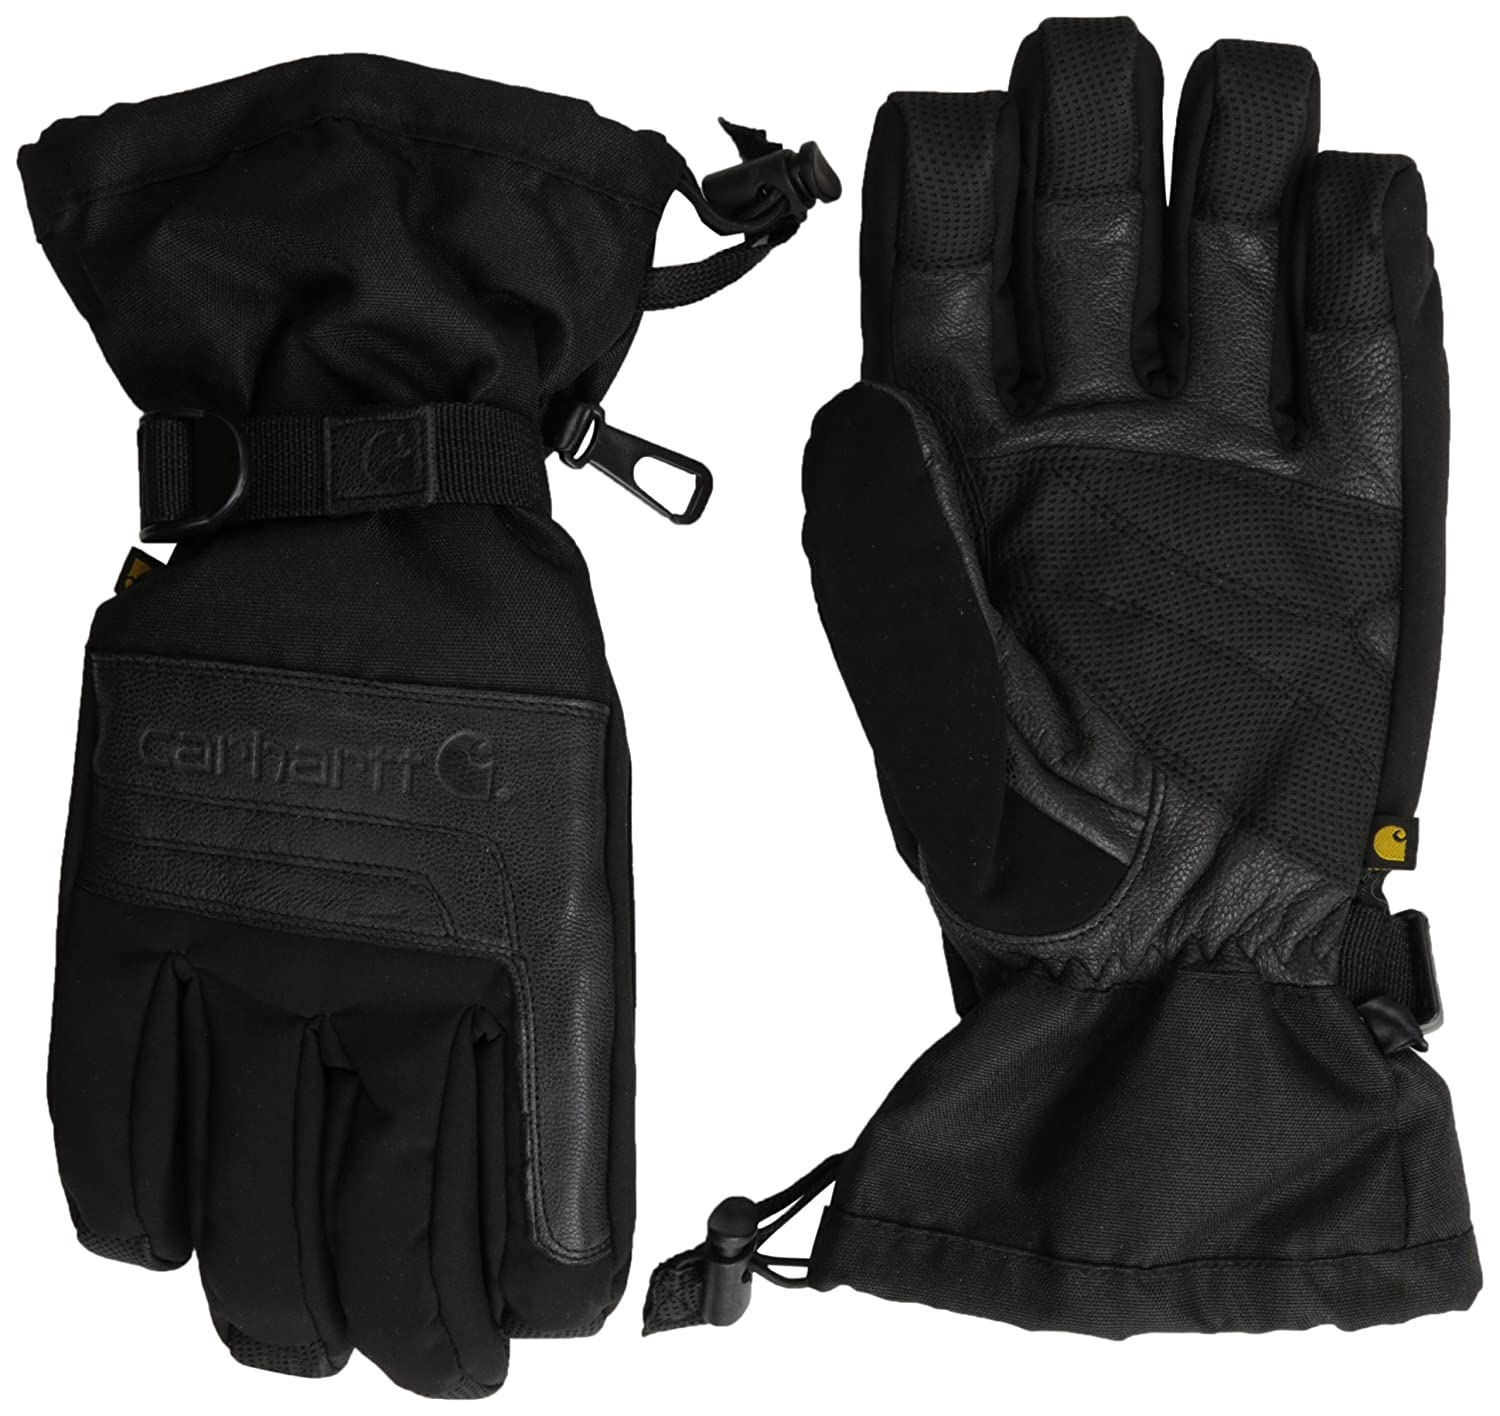 Carhartt Men's Cold Snap Insulated Work Glove, Black, Small A505